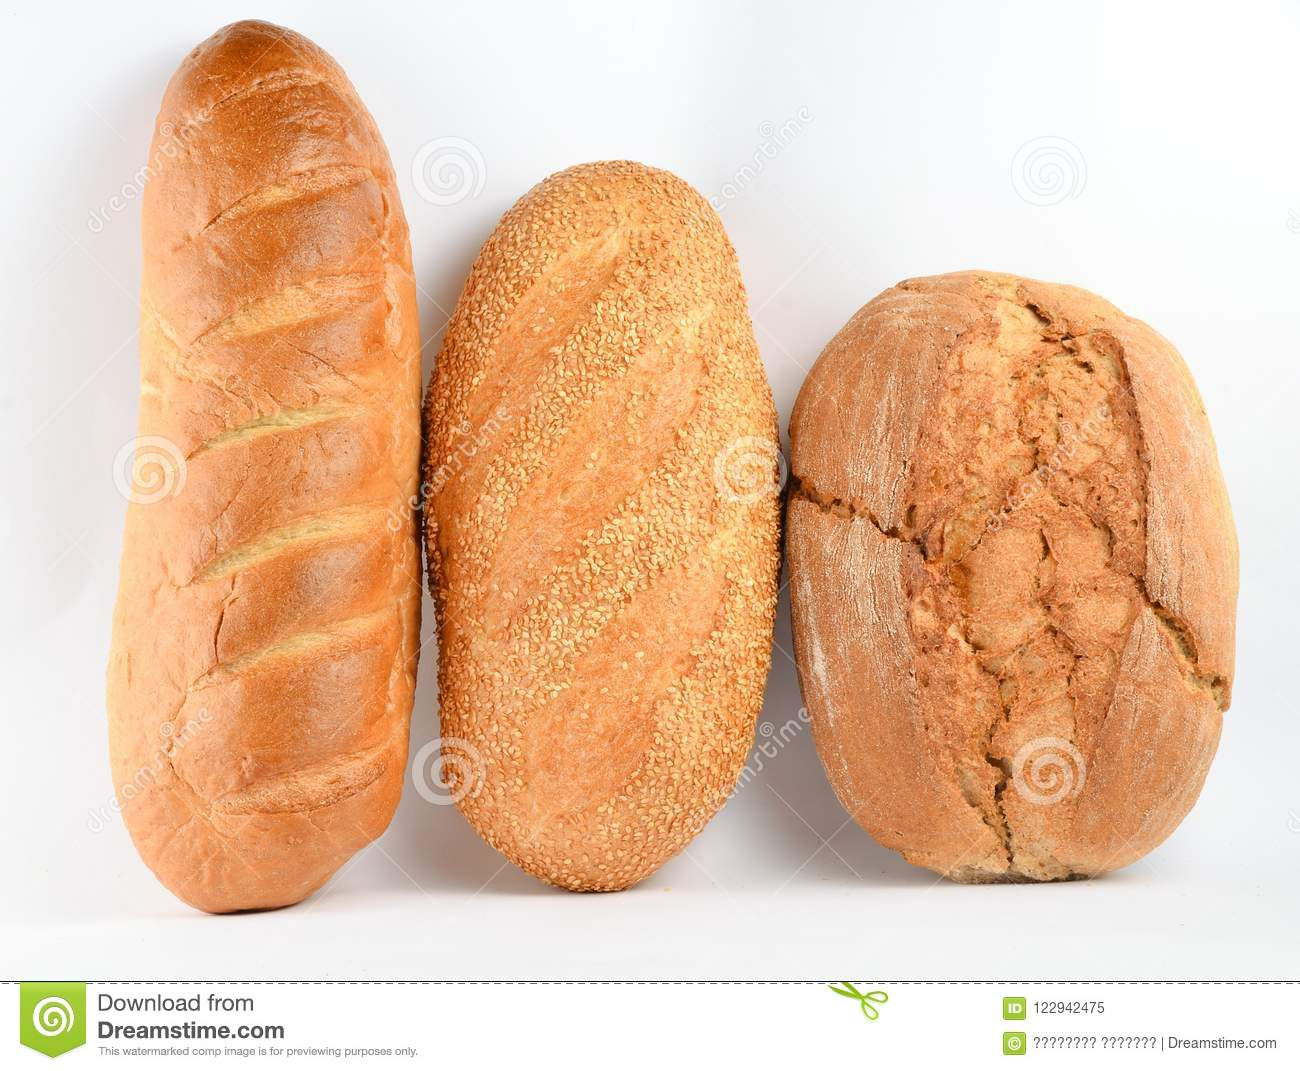 Loaves of bread isolated on white background. Wheat, rye, bread with sesame seeds